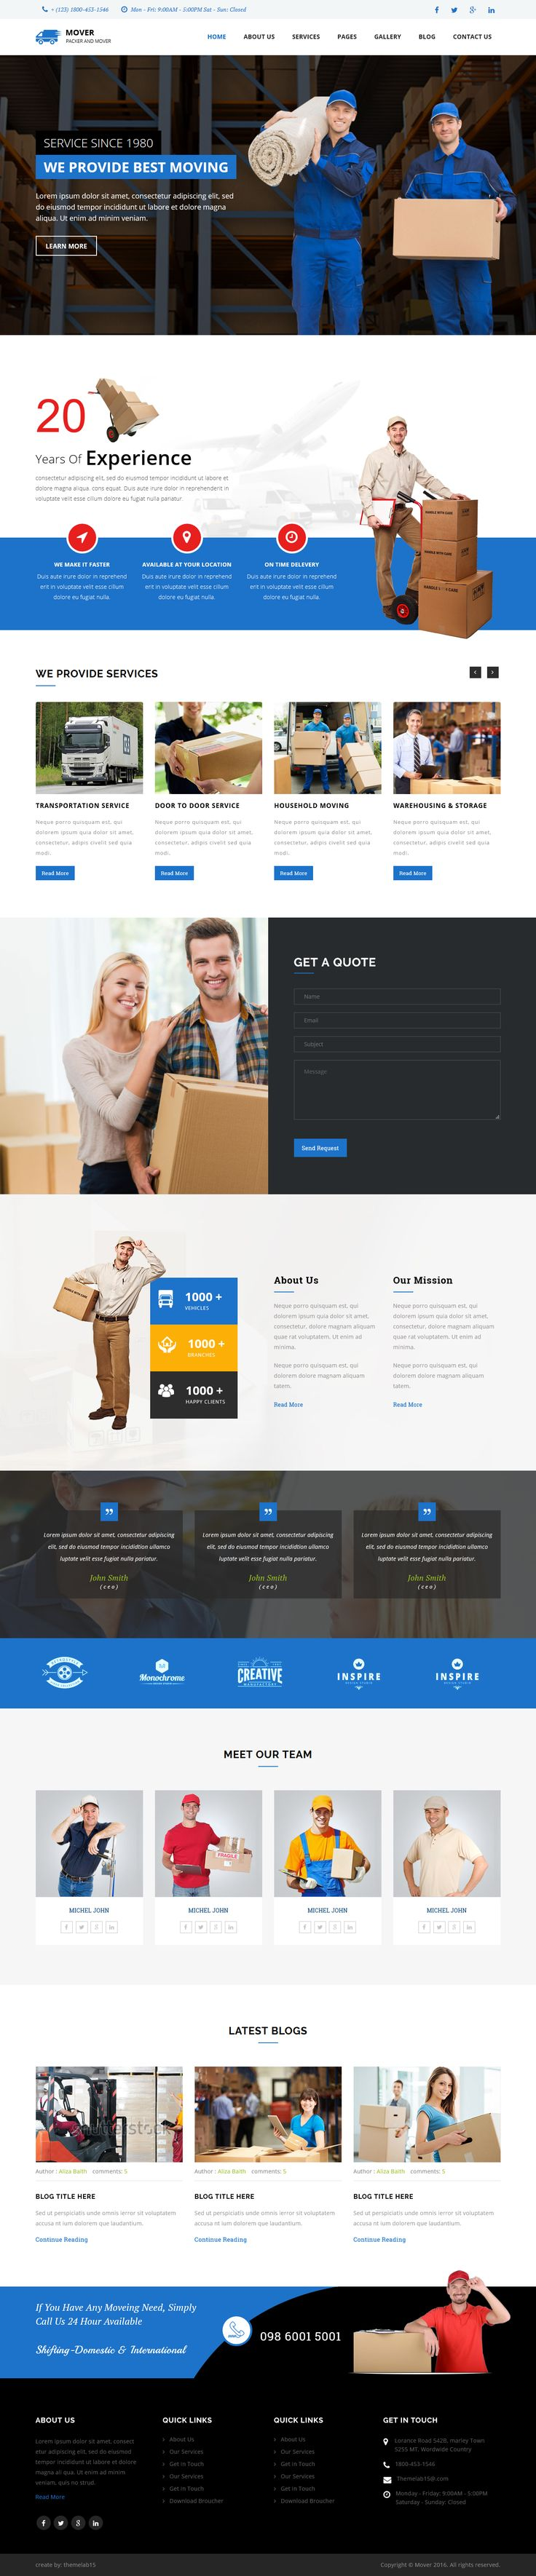 Movers - Company HTML Template. Live Preview & Download: https://themeforest.net/item/movers-company-html-template/16391694?ref=ksioks